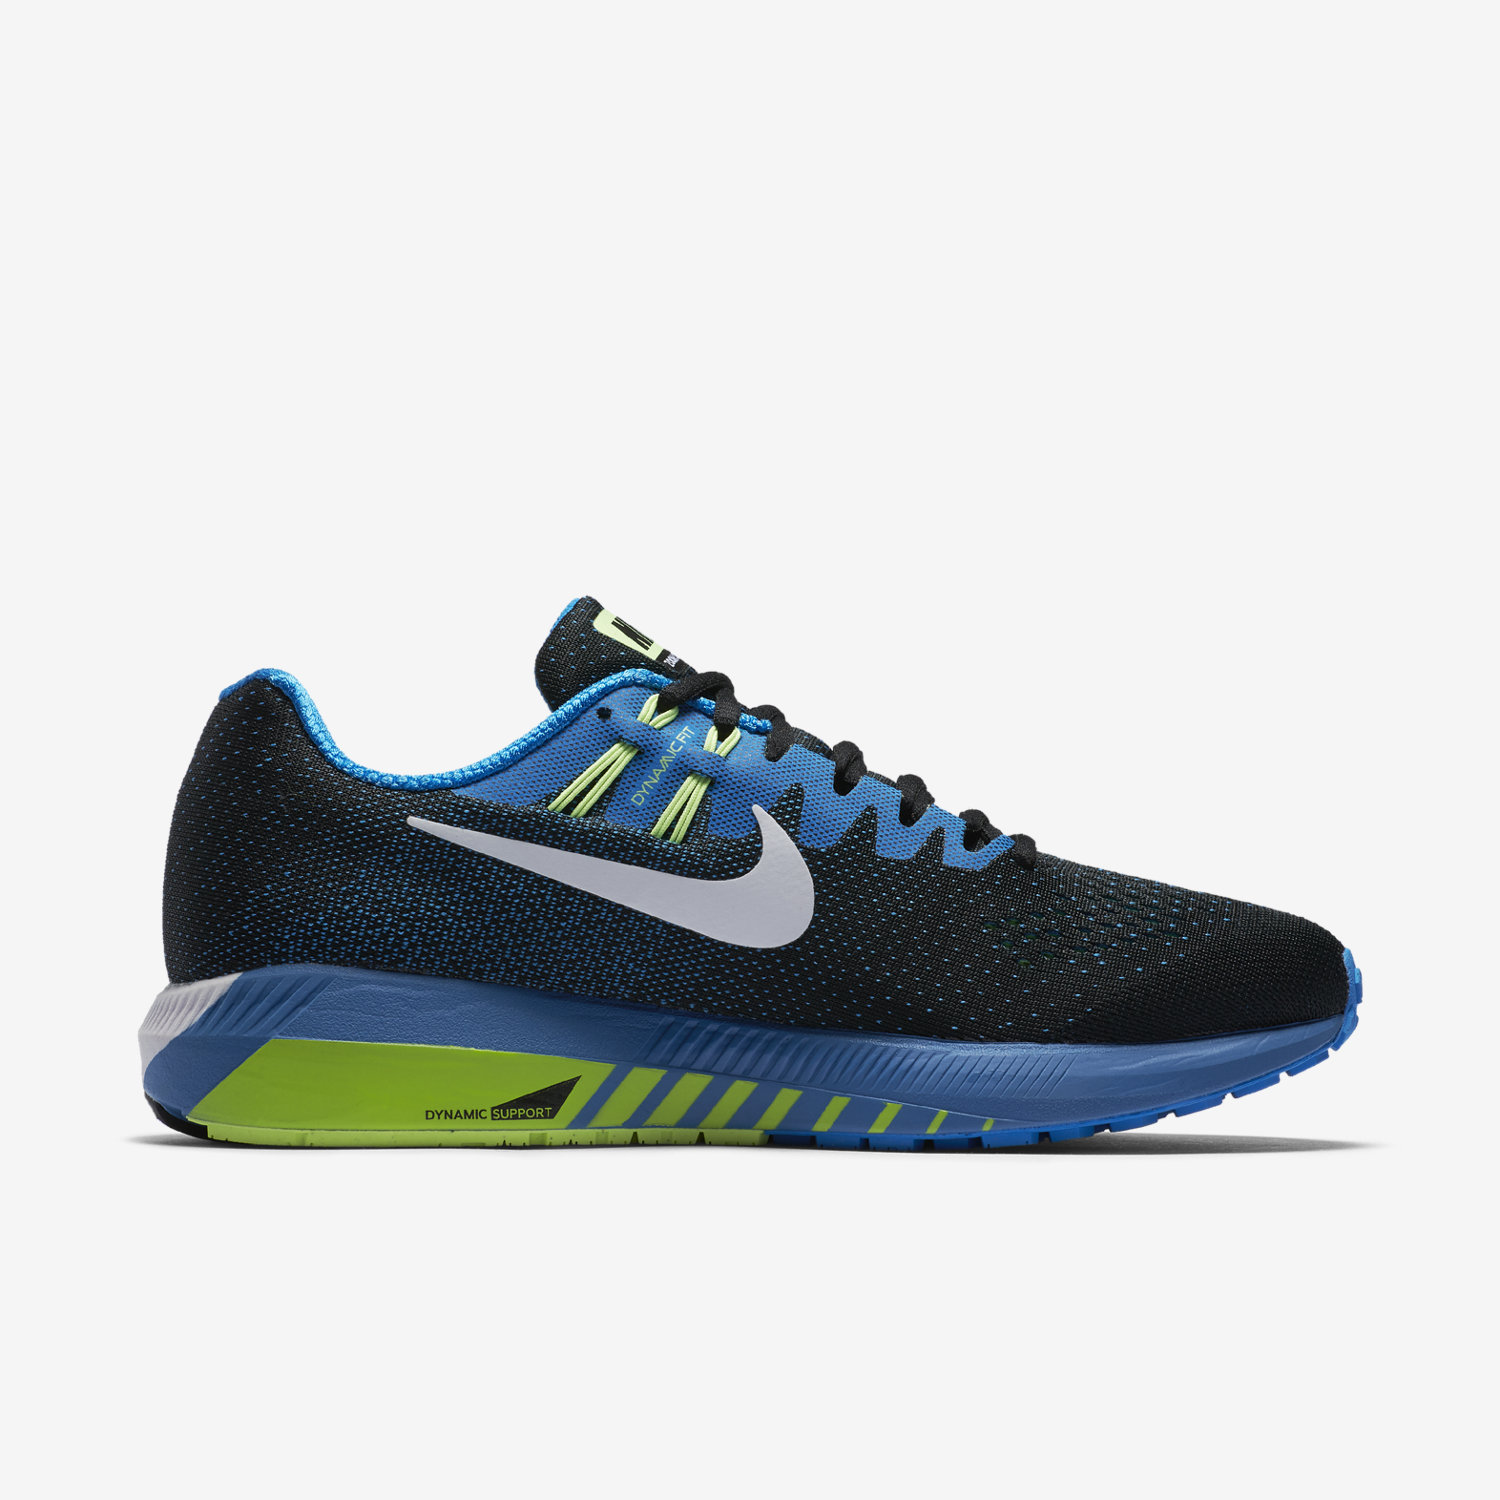 buy online 810a1 9f2fc ... Max 95 HYP PRM 20 Anniversary Shoes -Y1m6691 Nike online Nike Air Zoom  Structure 20 (Narrow) Mens Running Shoe. Nike.